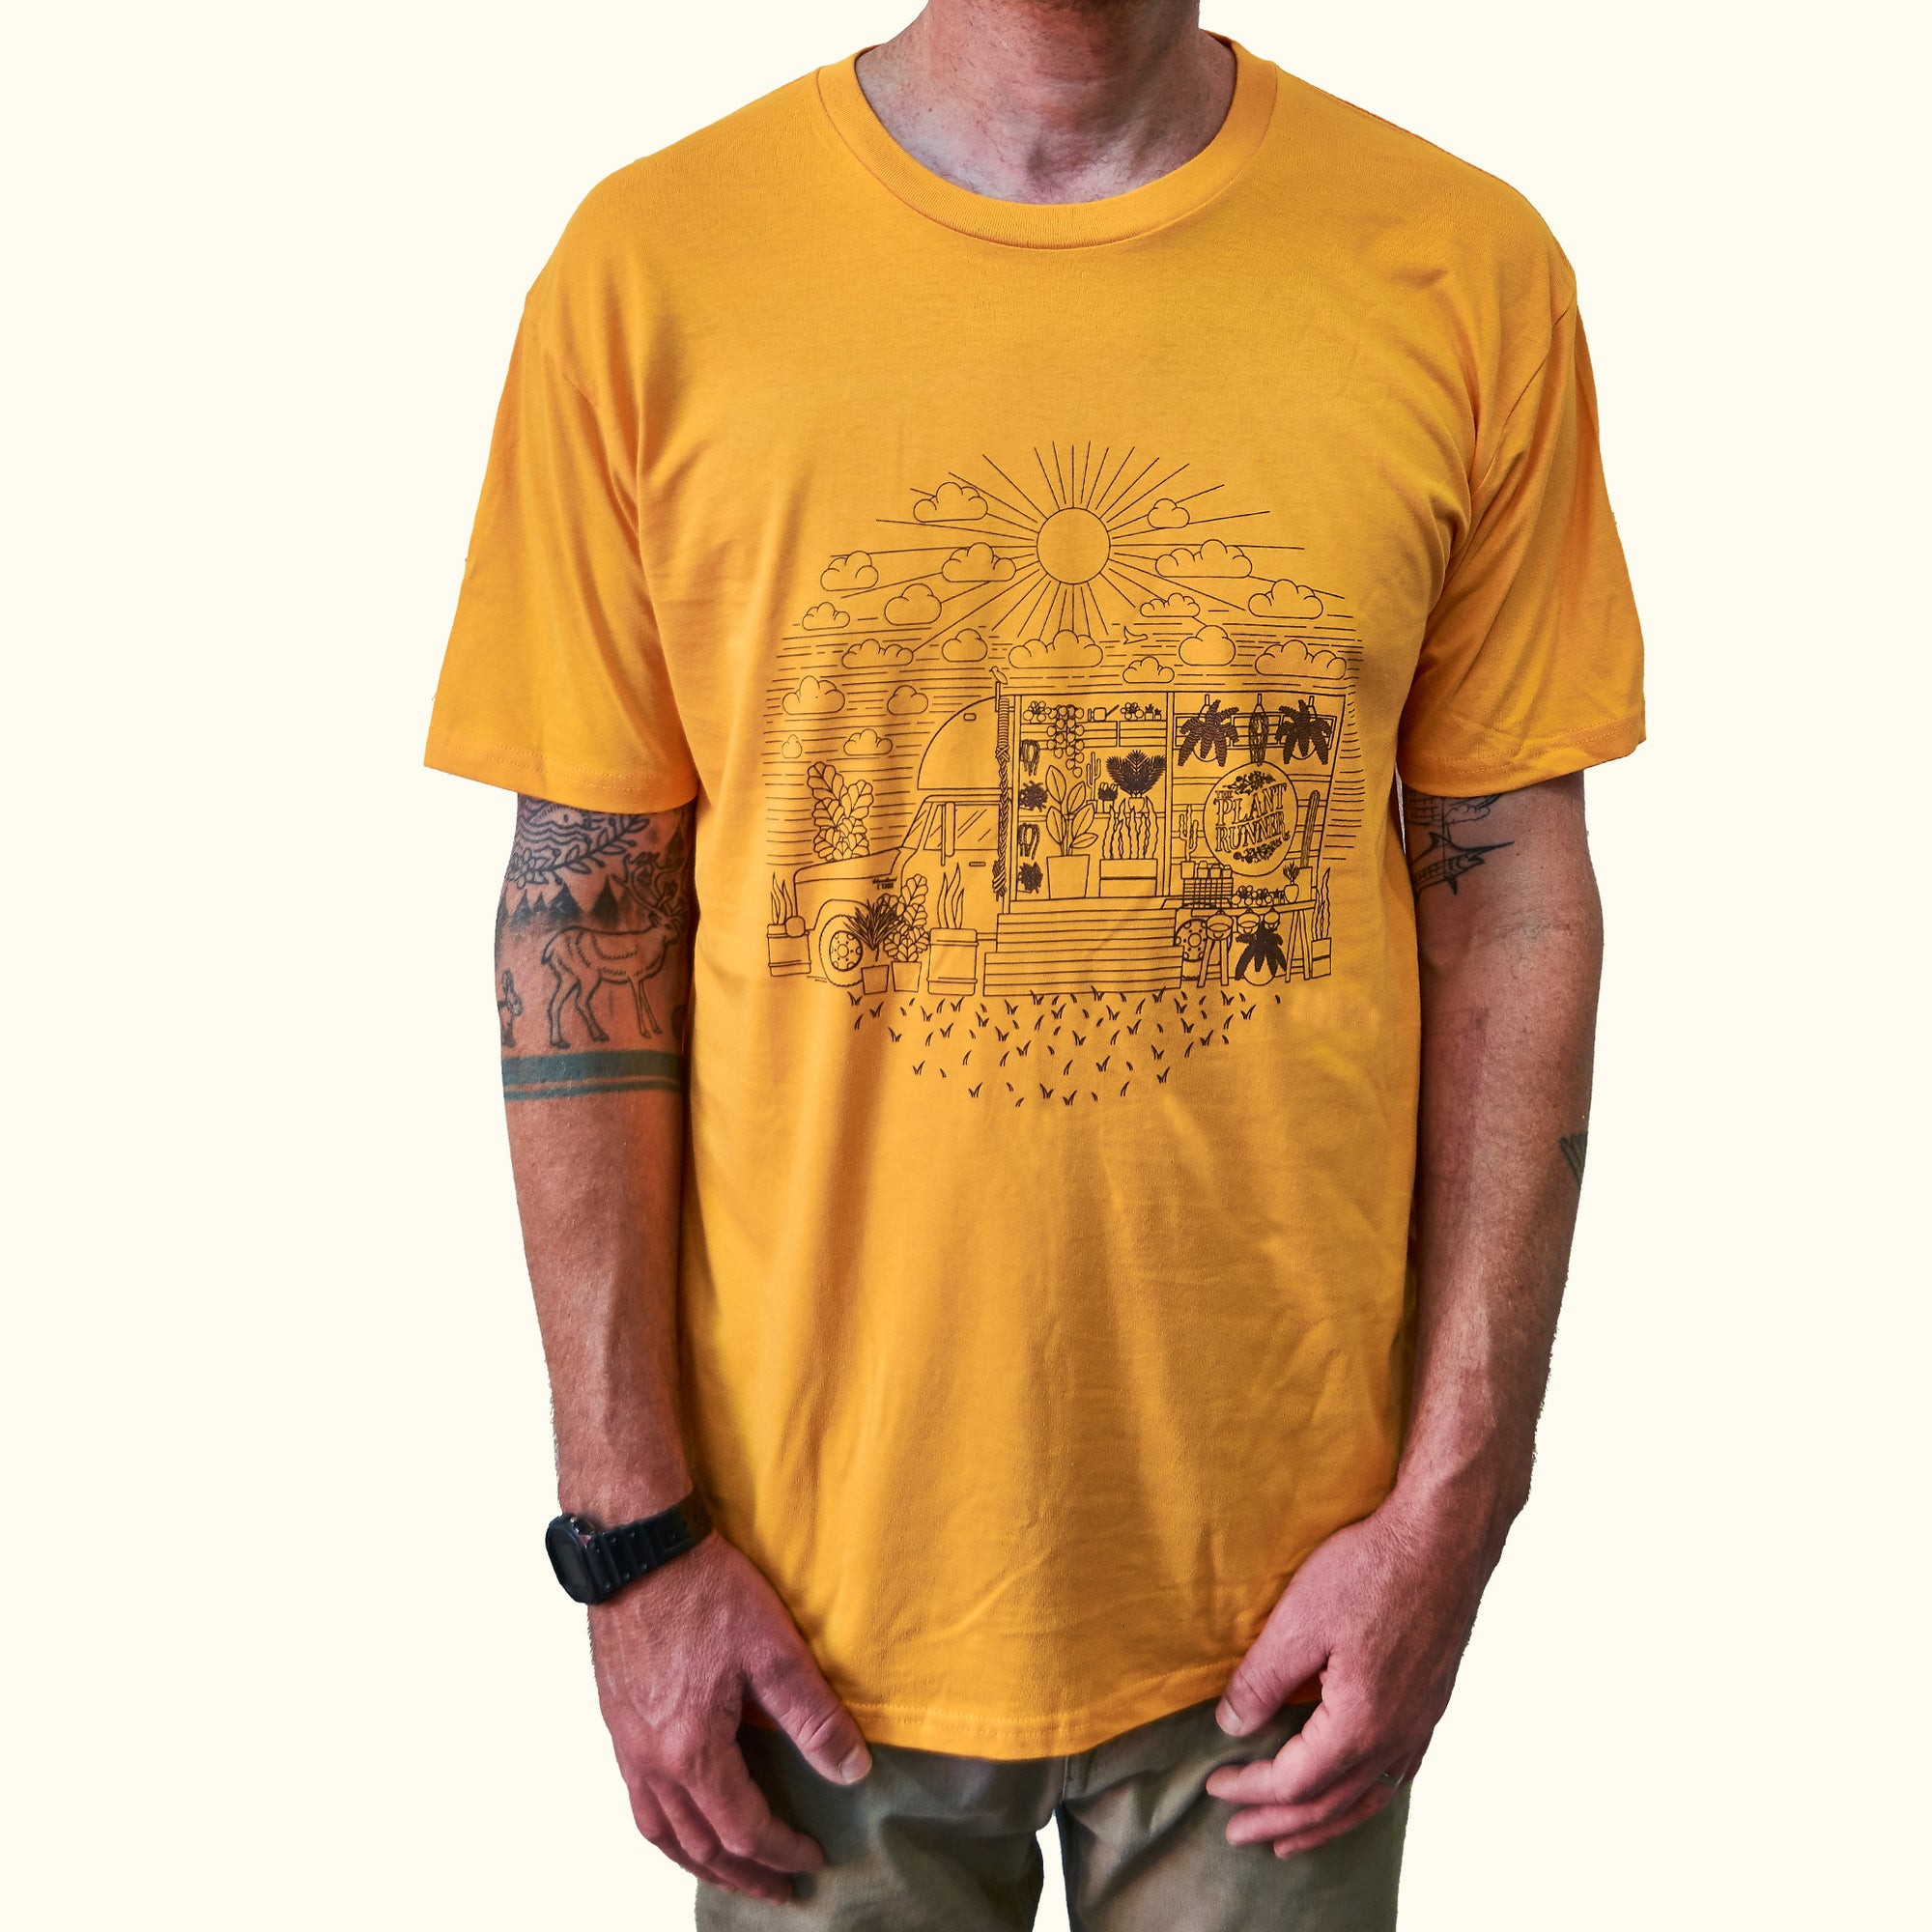 'Fern in the Sun' Plant Runner Mens Tee - Vintage Yellow